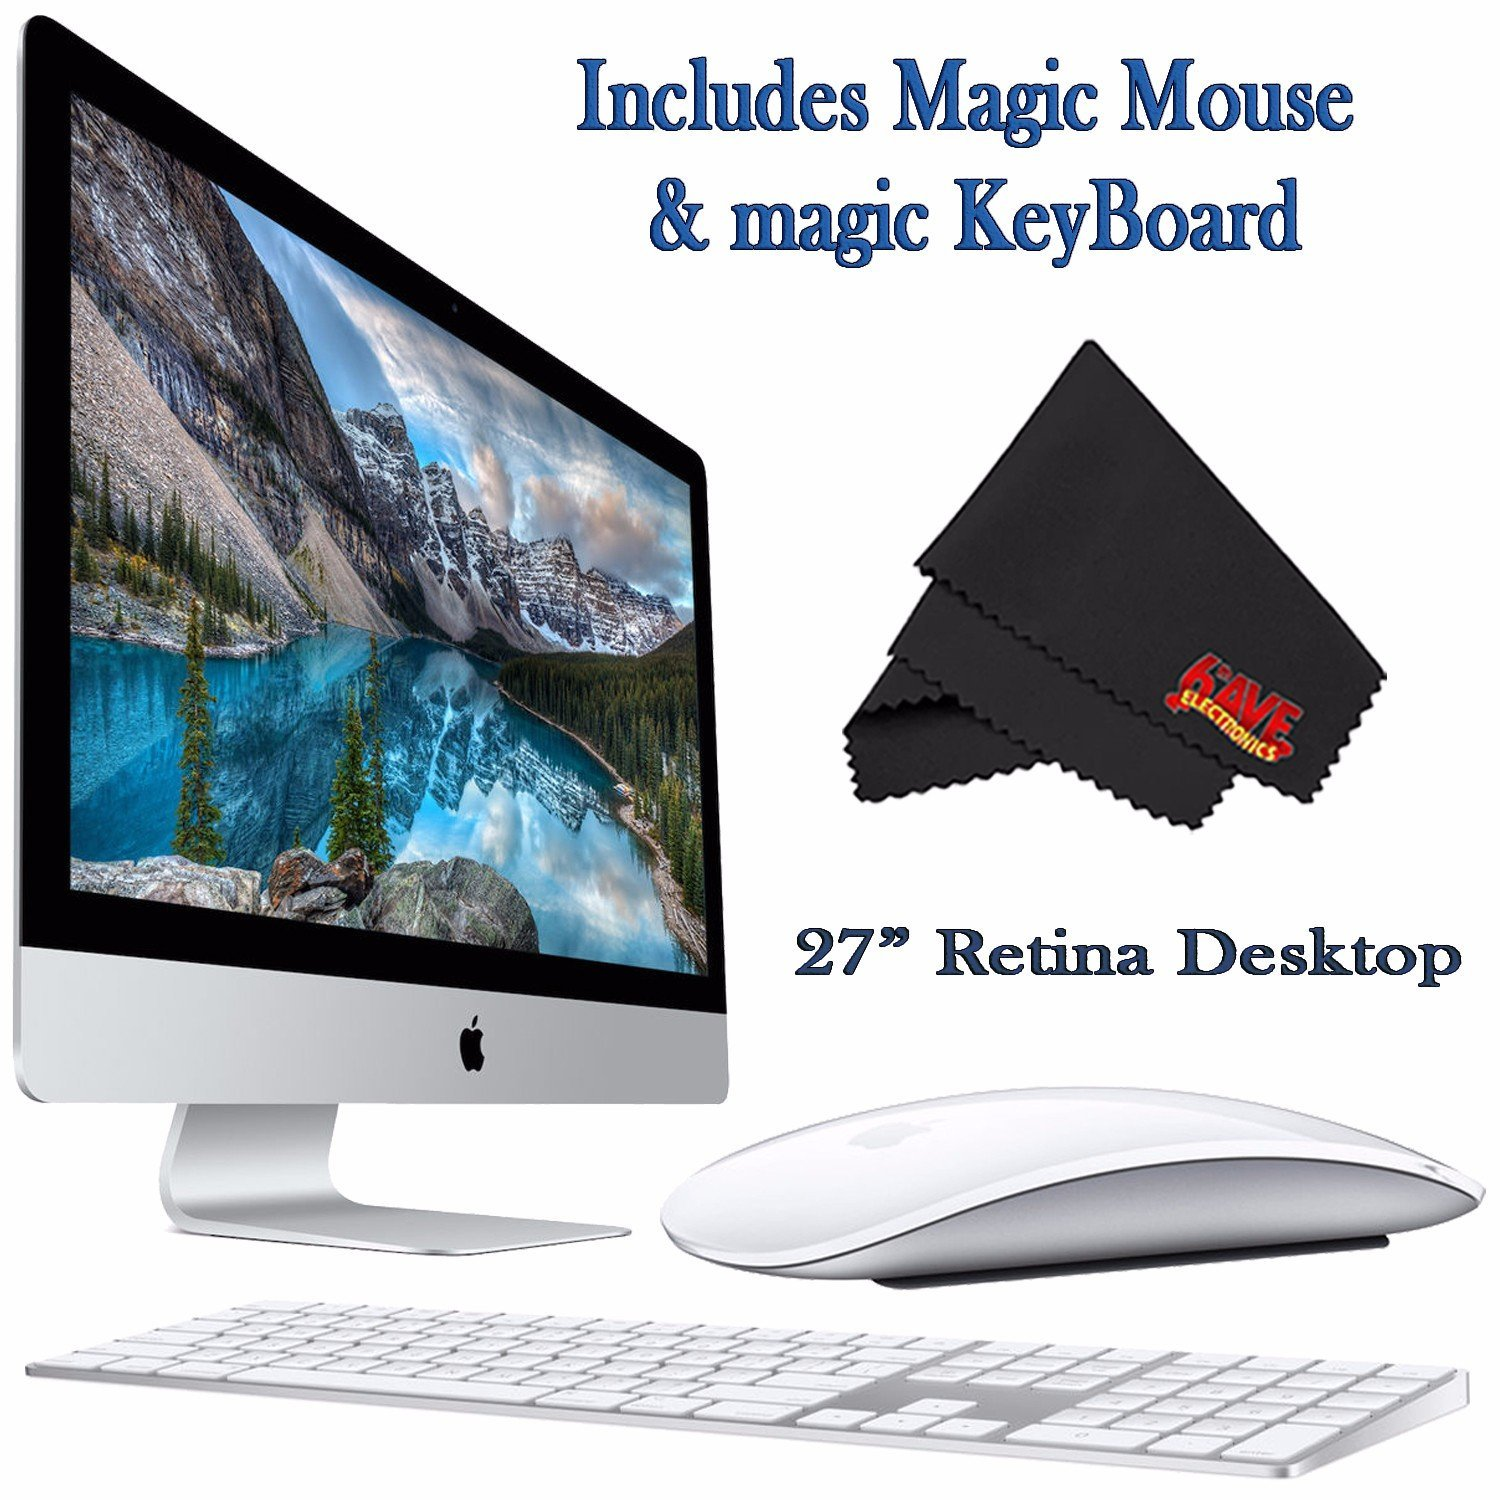 Apple iMac MK482LL/A 27-Inch Retina 5K Display Desktop 3.3GHz 8GB 2TB Fusion Drive + Mac Essentials Lifetime Online Support + Magic Keyboard and Magic Mouse 0